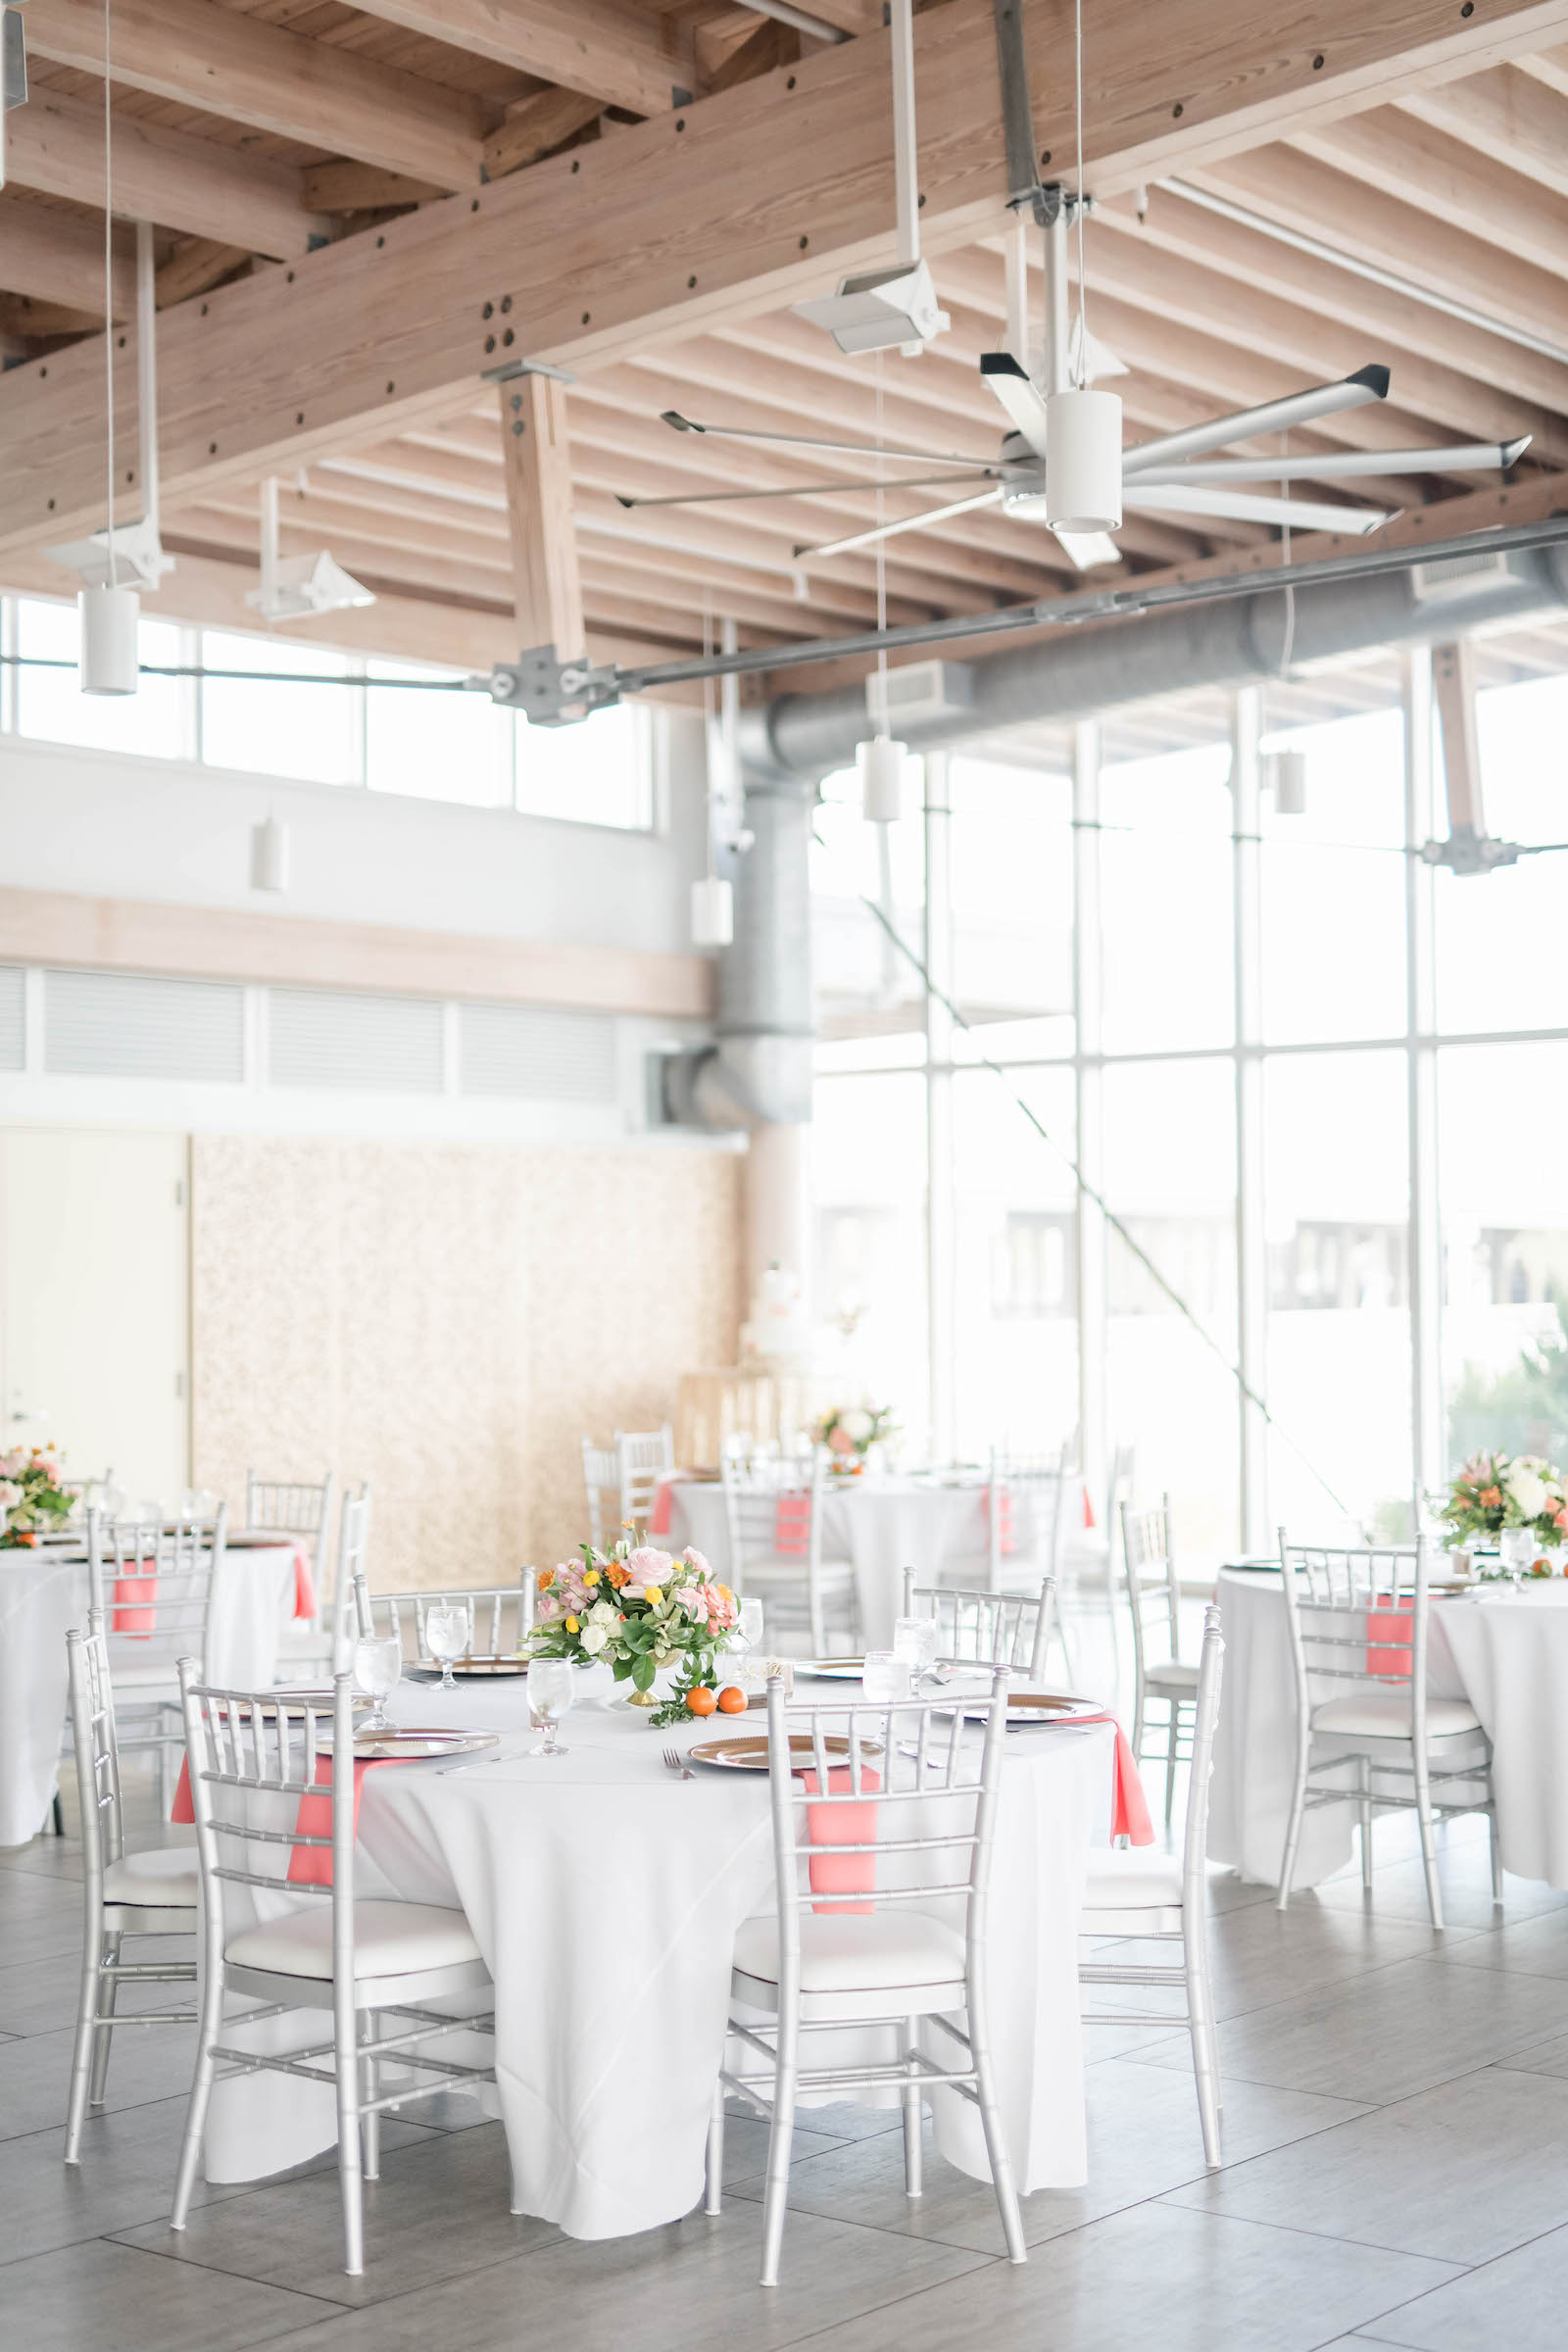 Tropical Wedding Reception Decor, Silver Chiavari Chairs, Pink Linen Napkins | Light and Airy Wedding Venue Tampa River Center | Tampa Bay Wedding Planner Coastal Coordinating